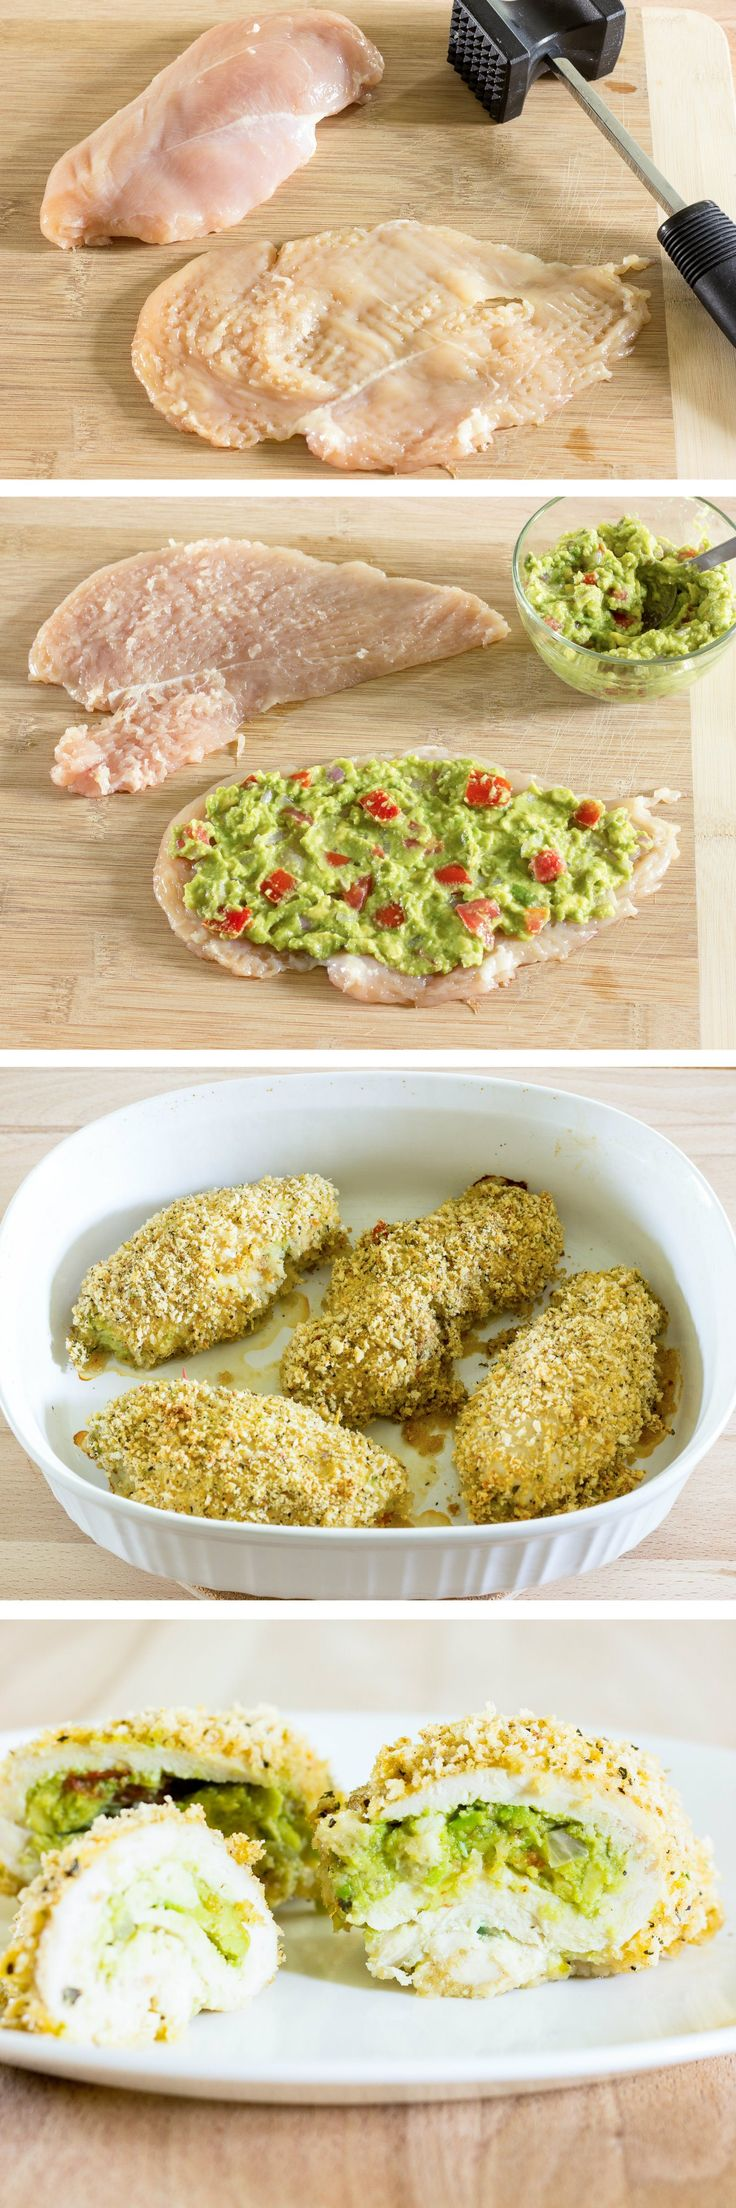 Guacamole Stuffed Chicken Breast - Crispy coated chicken stuffed with guacamole.